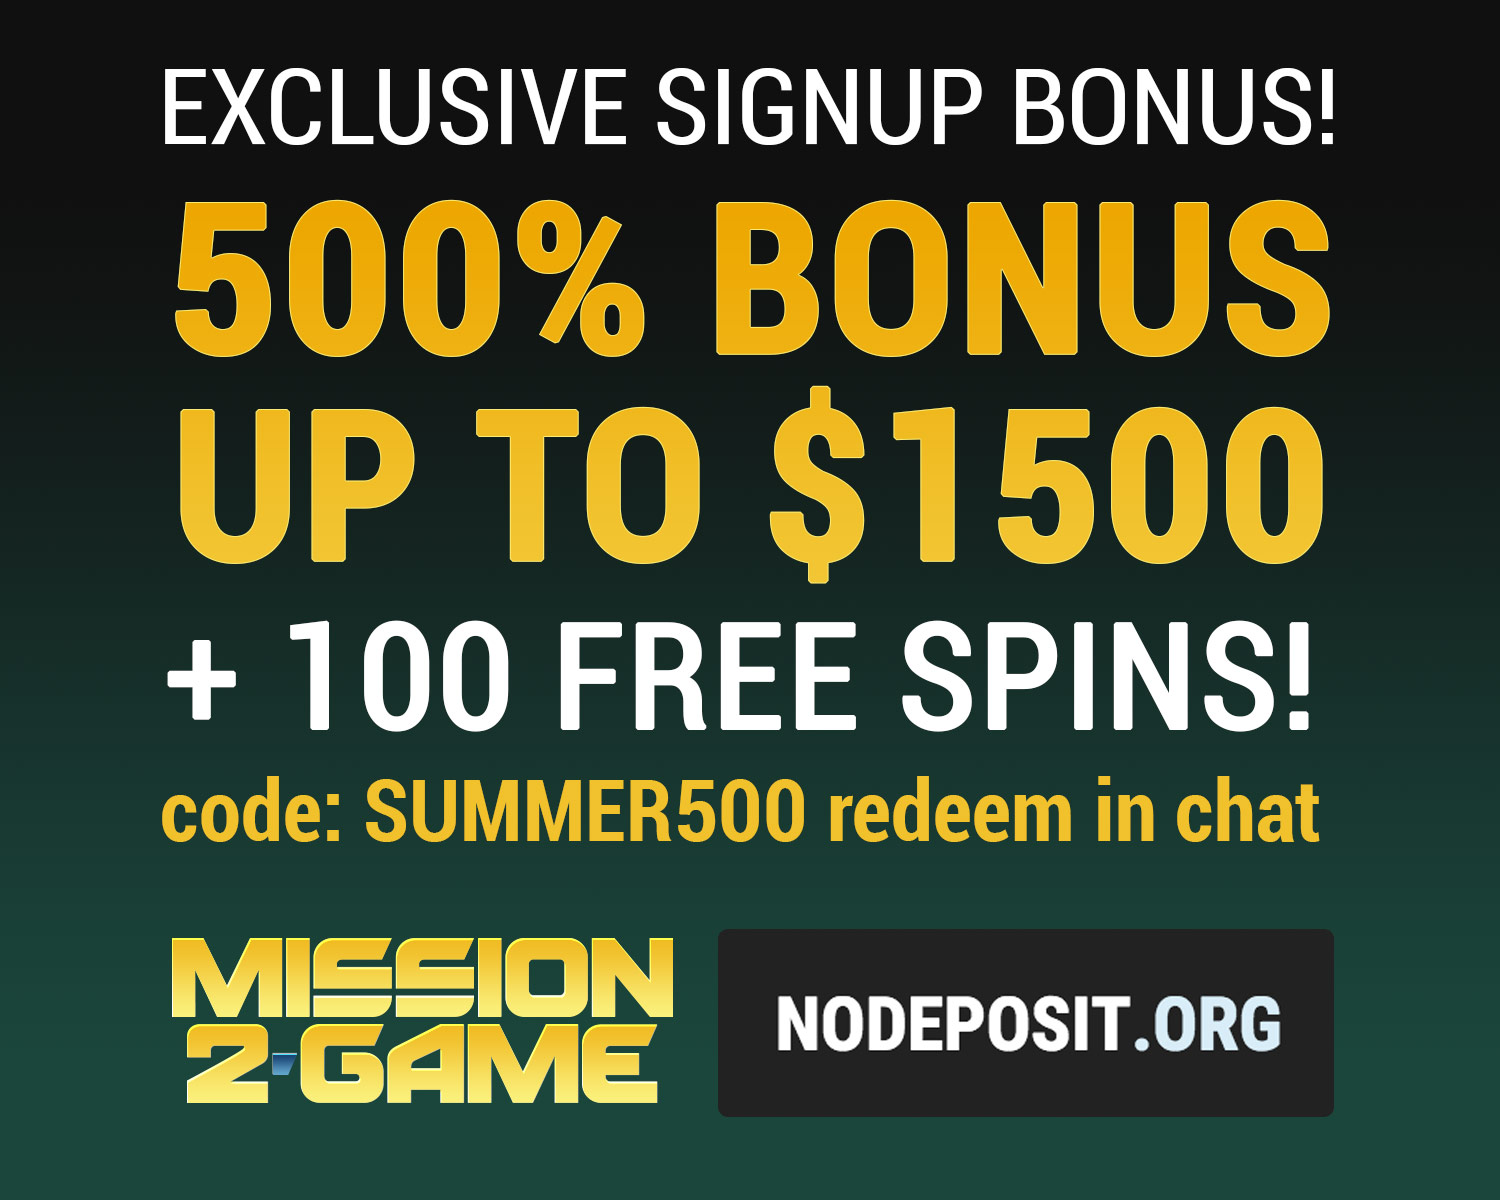 Exclusive no deposit bonus by Mission2Game